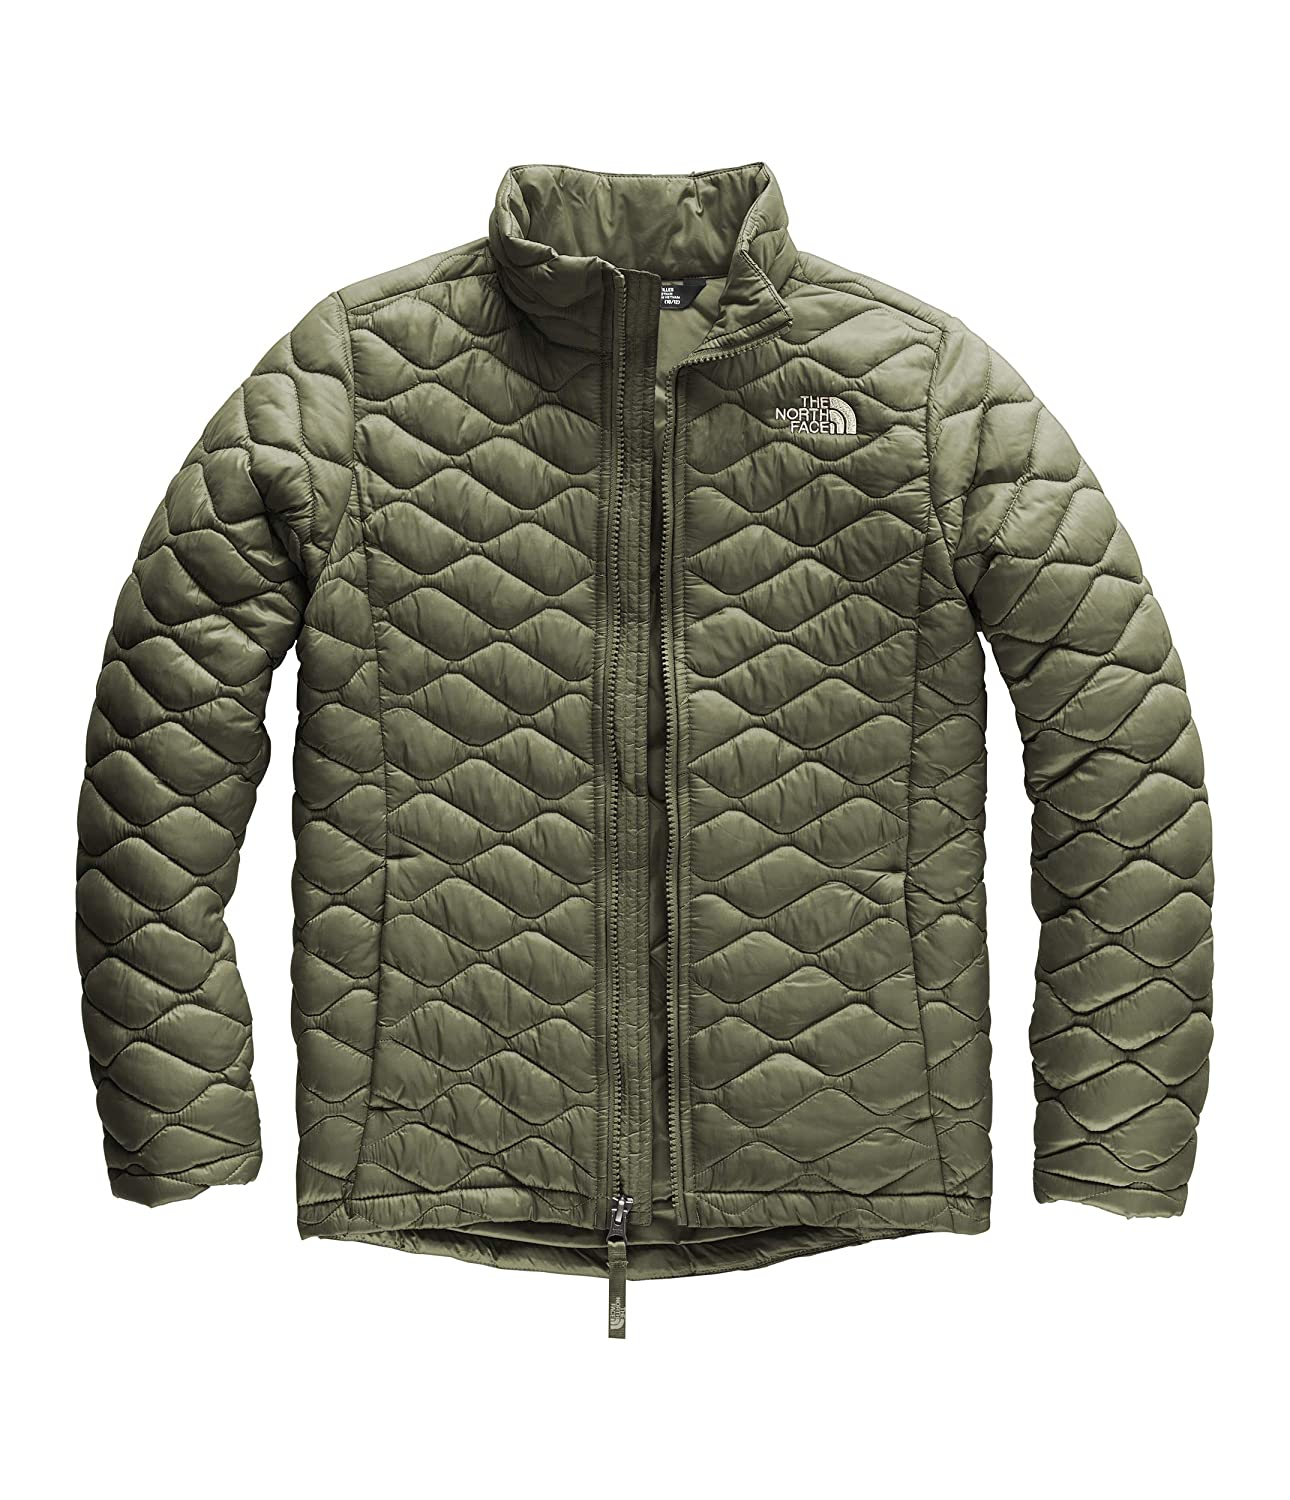 5bea41c69a07 Amazon.com  The North Face Girl s Thermoball Full Zip Jacket  Clothing